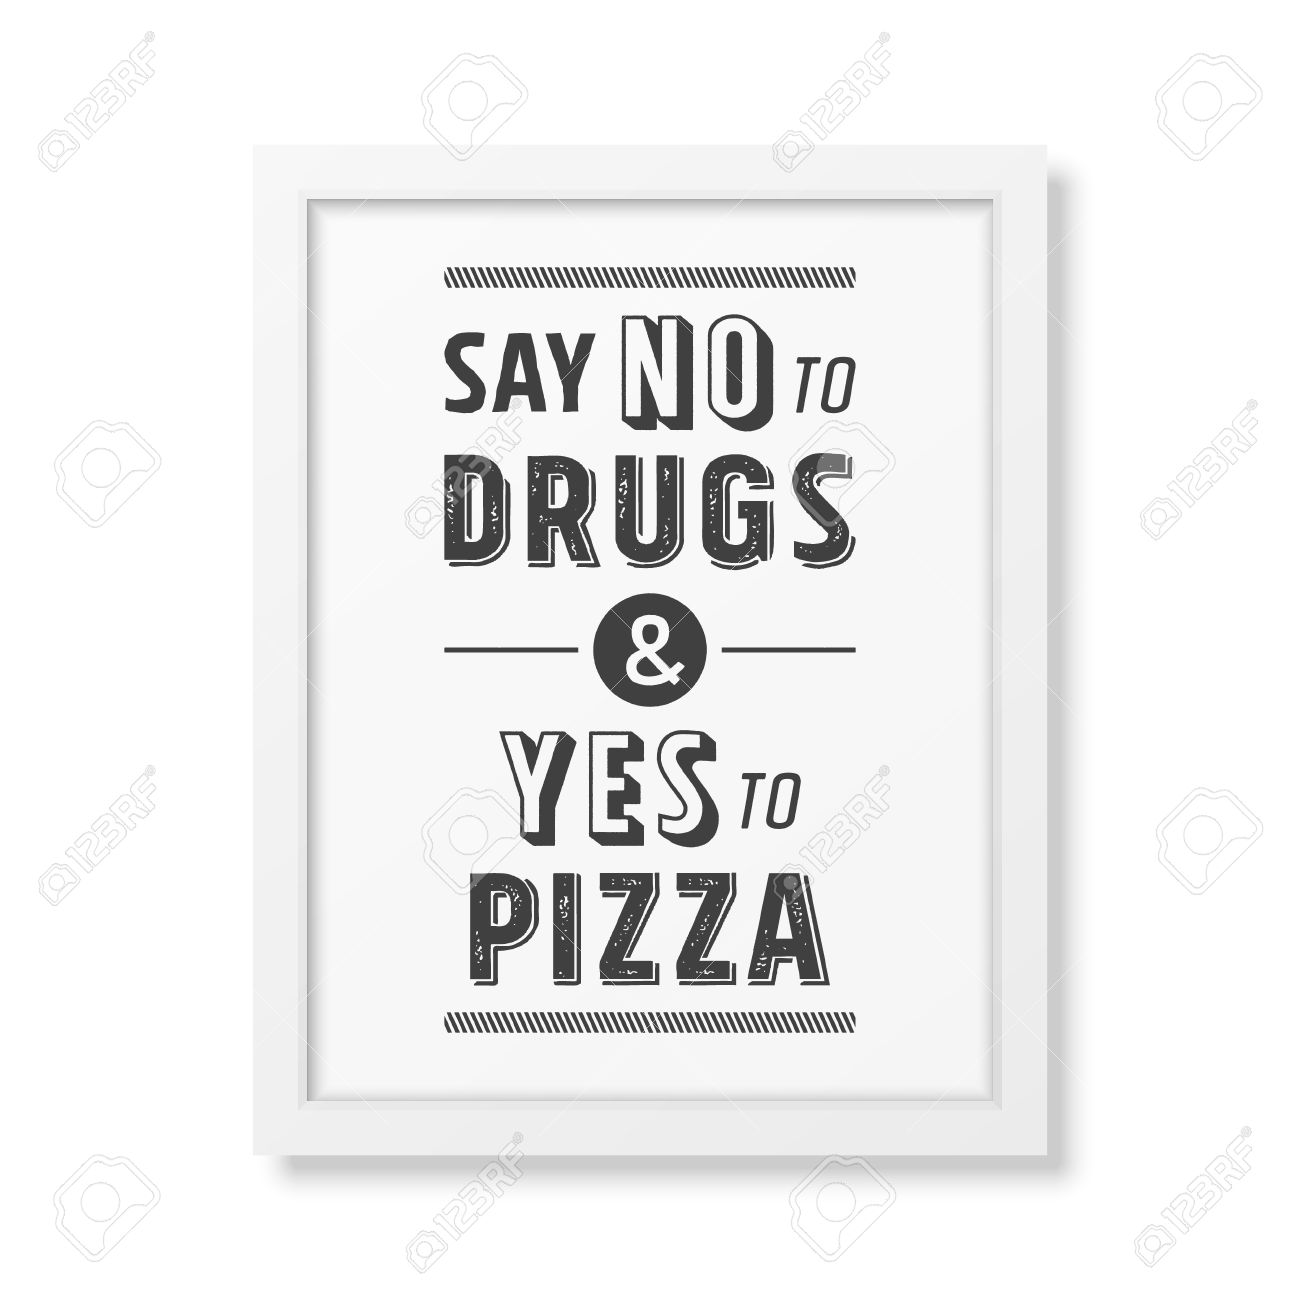 Say No To Drugs And Yes To Pizza Quote Typographical Background Royalty Free Cliparts Vectors And Stock Illustration Image 54102321